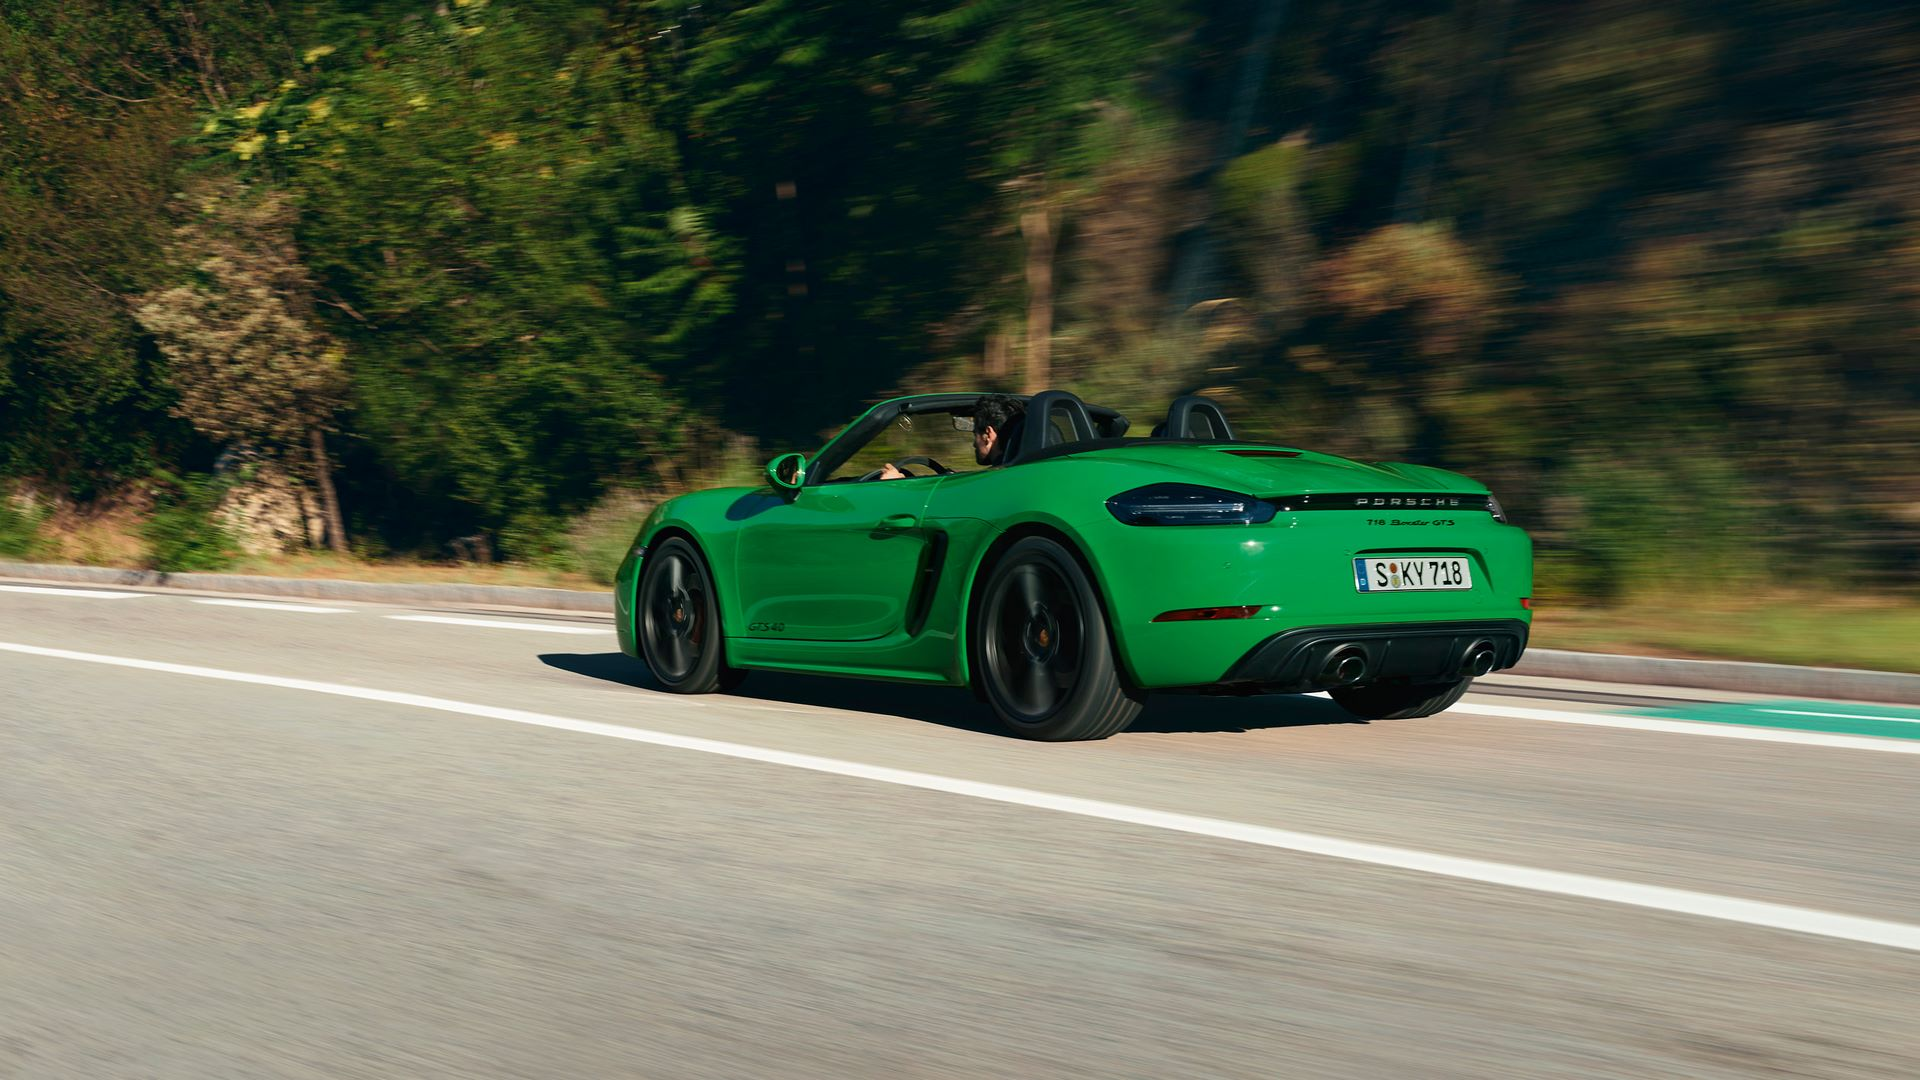 Porsche-718-Boxster-GTS-4.0-and-718-Cayman-GTS-4.0-4